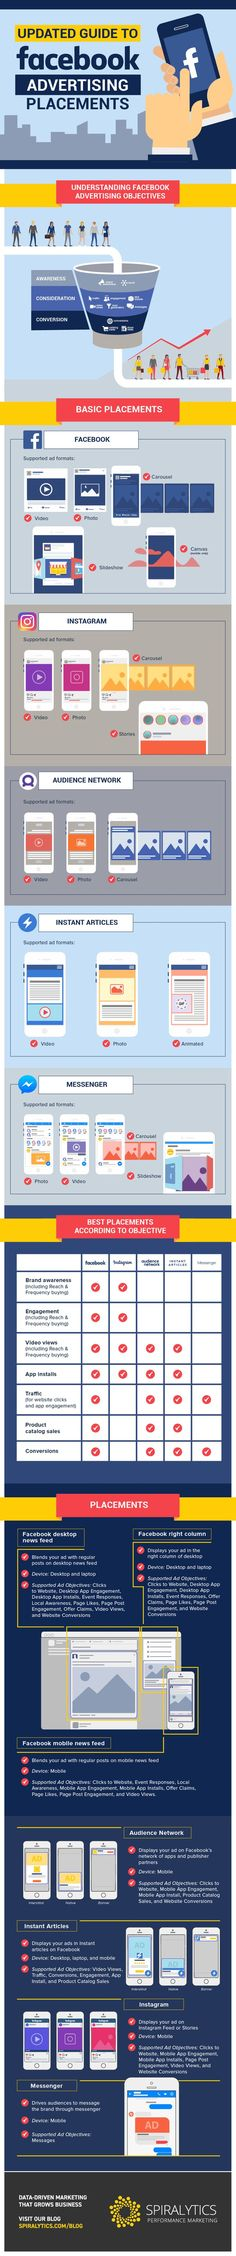 Infographic Courtesy of: Facebook Marketing, Business Marketing, Content Marketing, Online Marketing, Social Media Marketing, Digital Marketing, Marketing Ideas, Online Advertising, Marketing Strategies